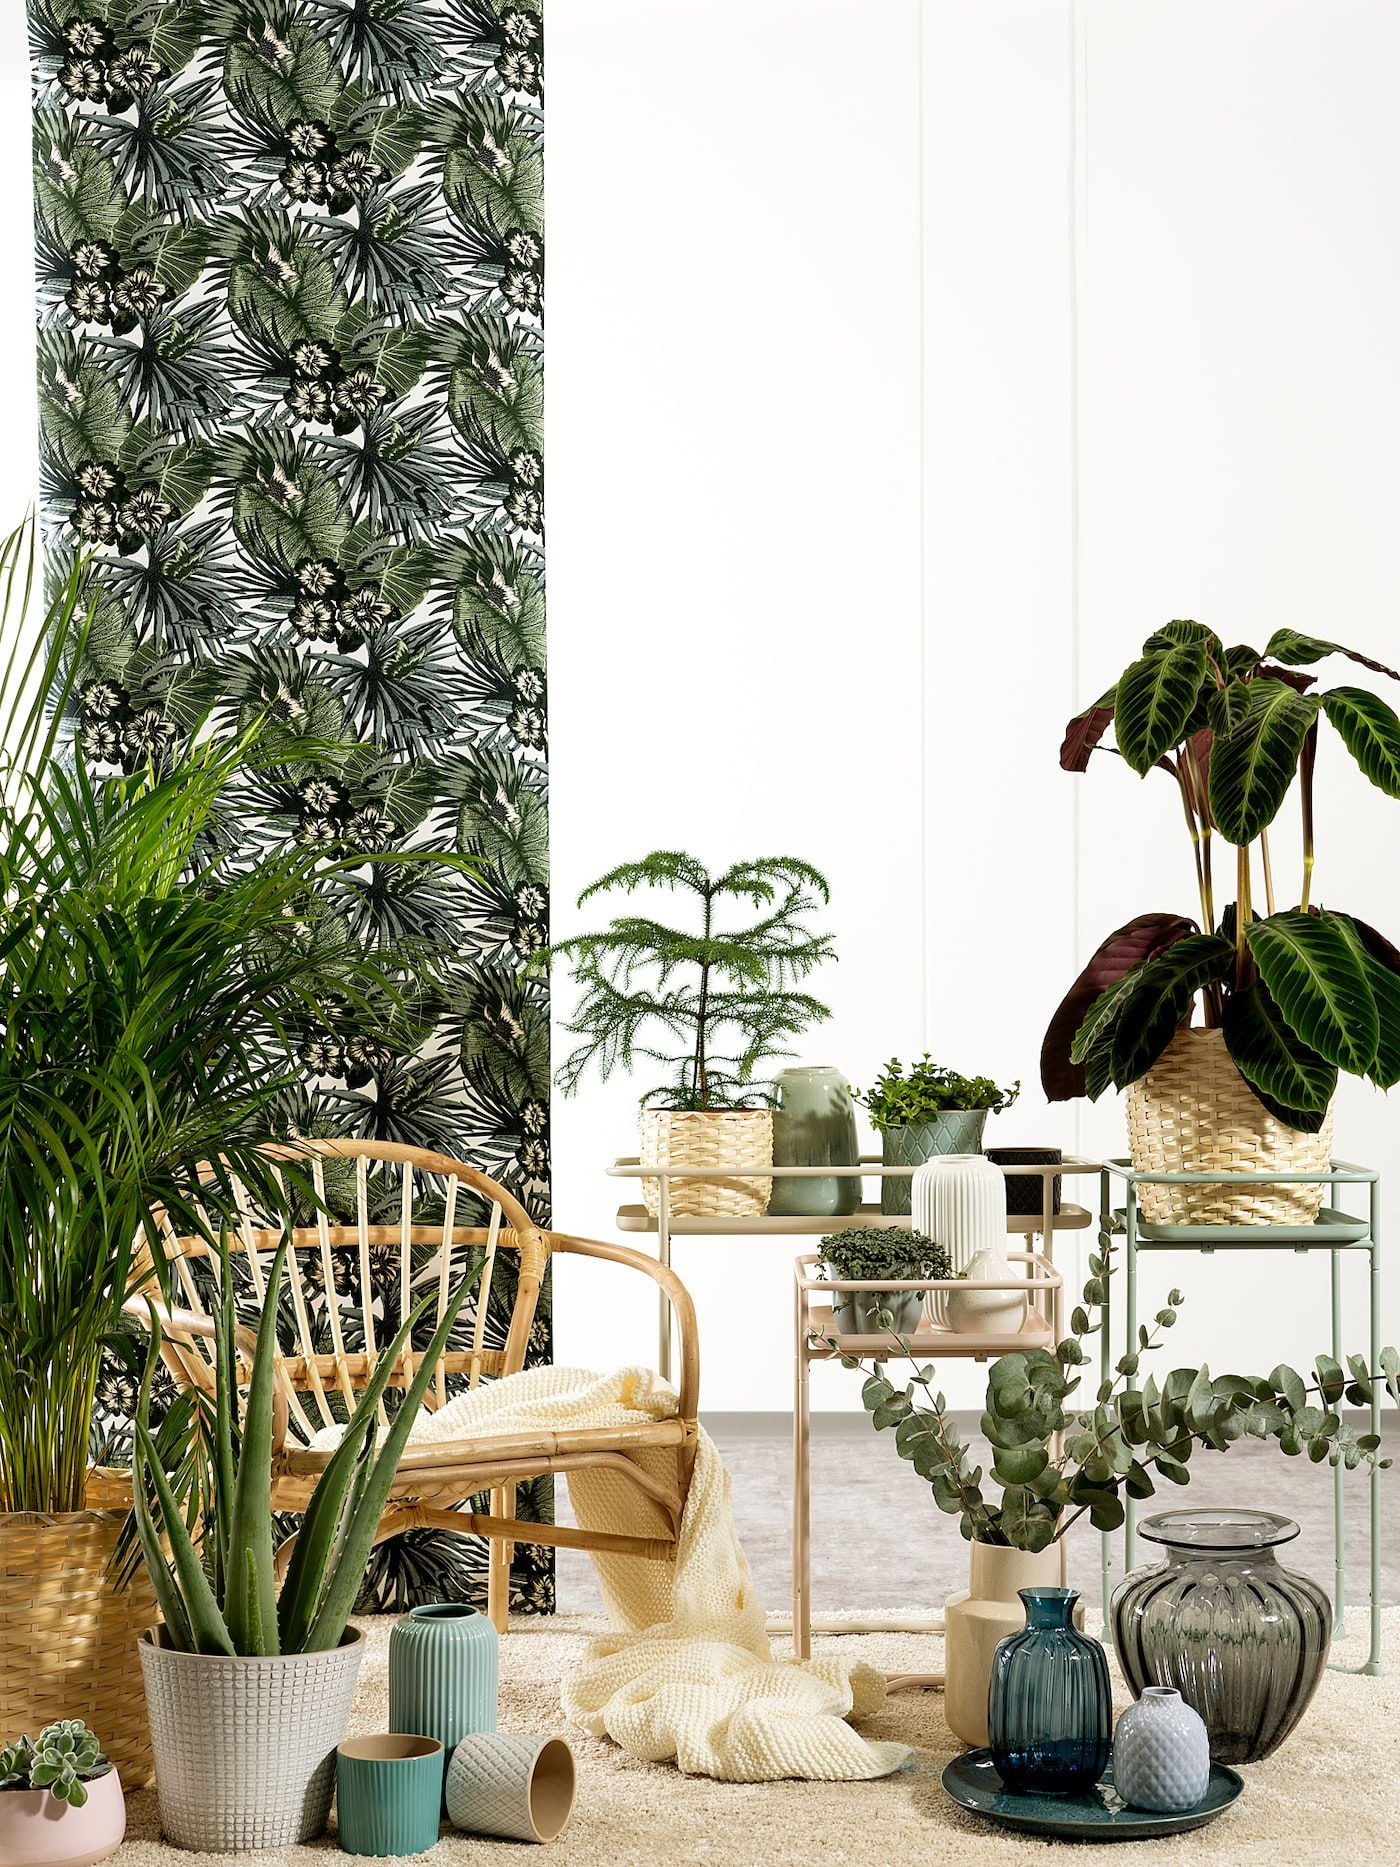 Create an indoor haven with outdoor style